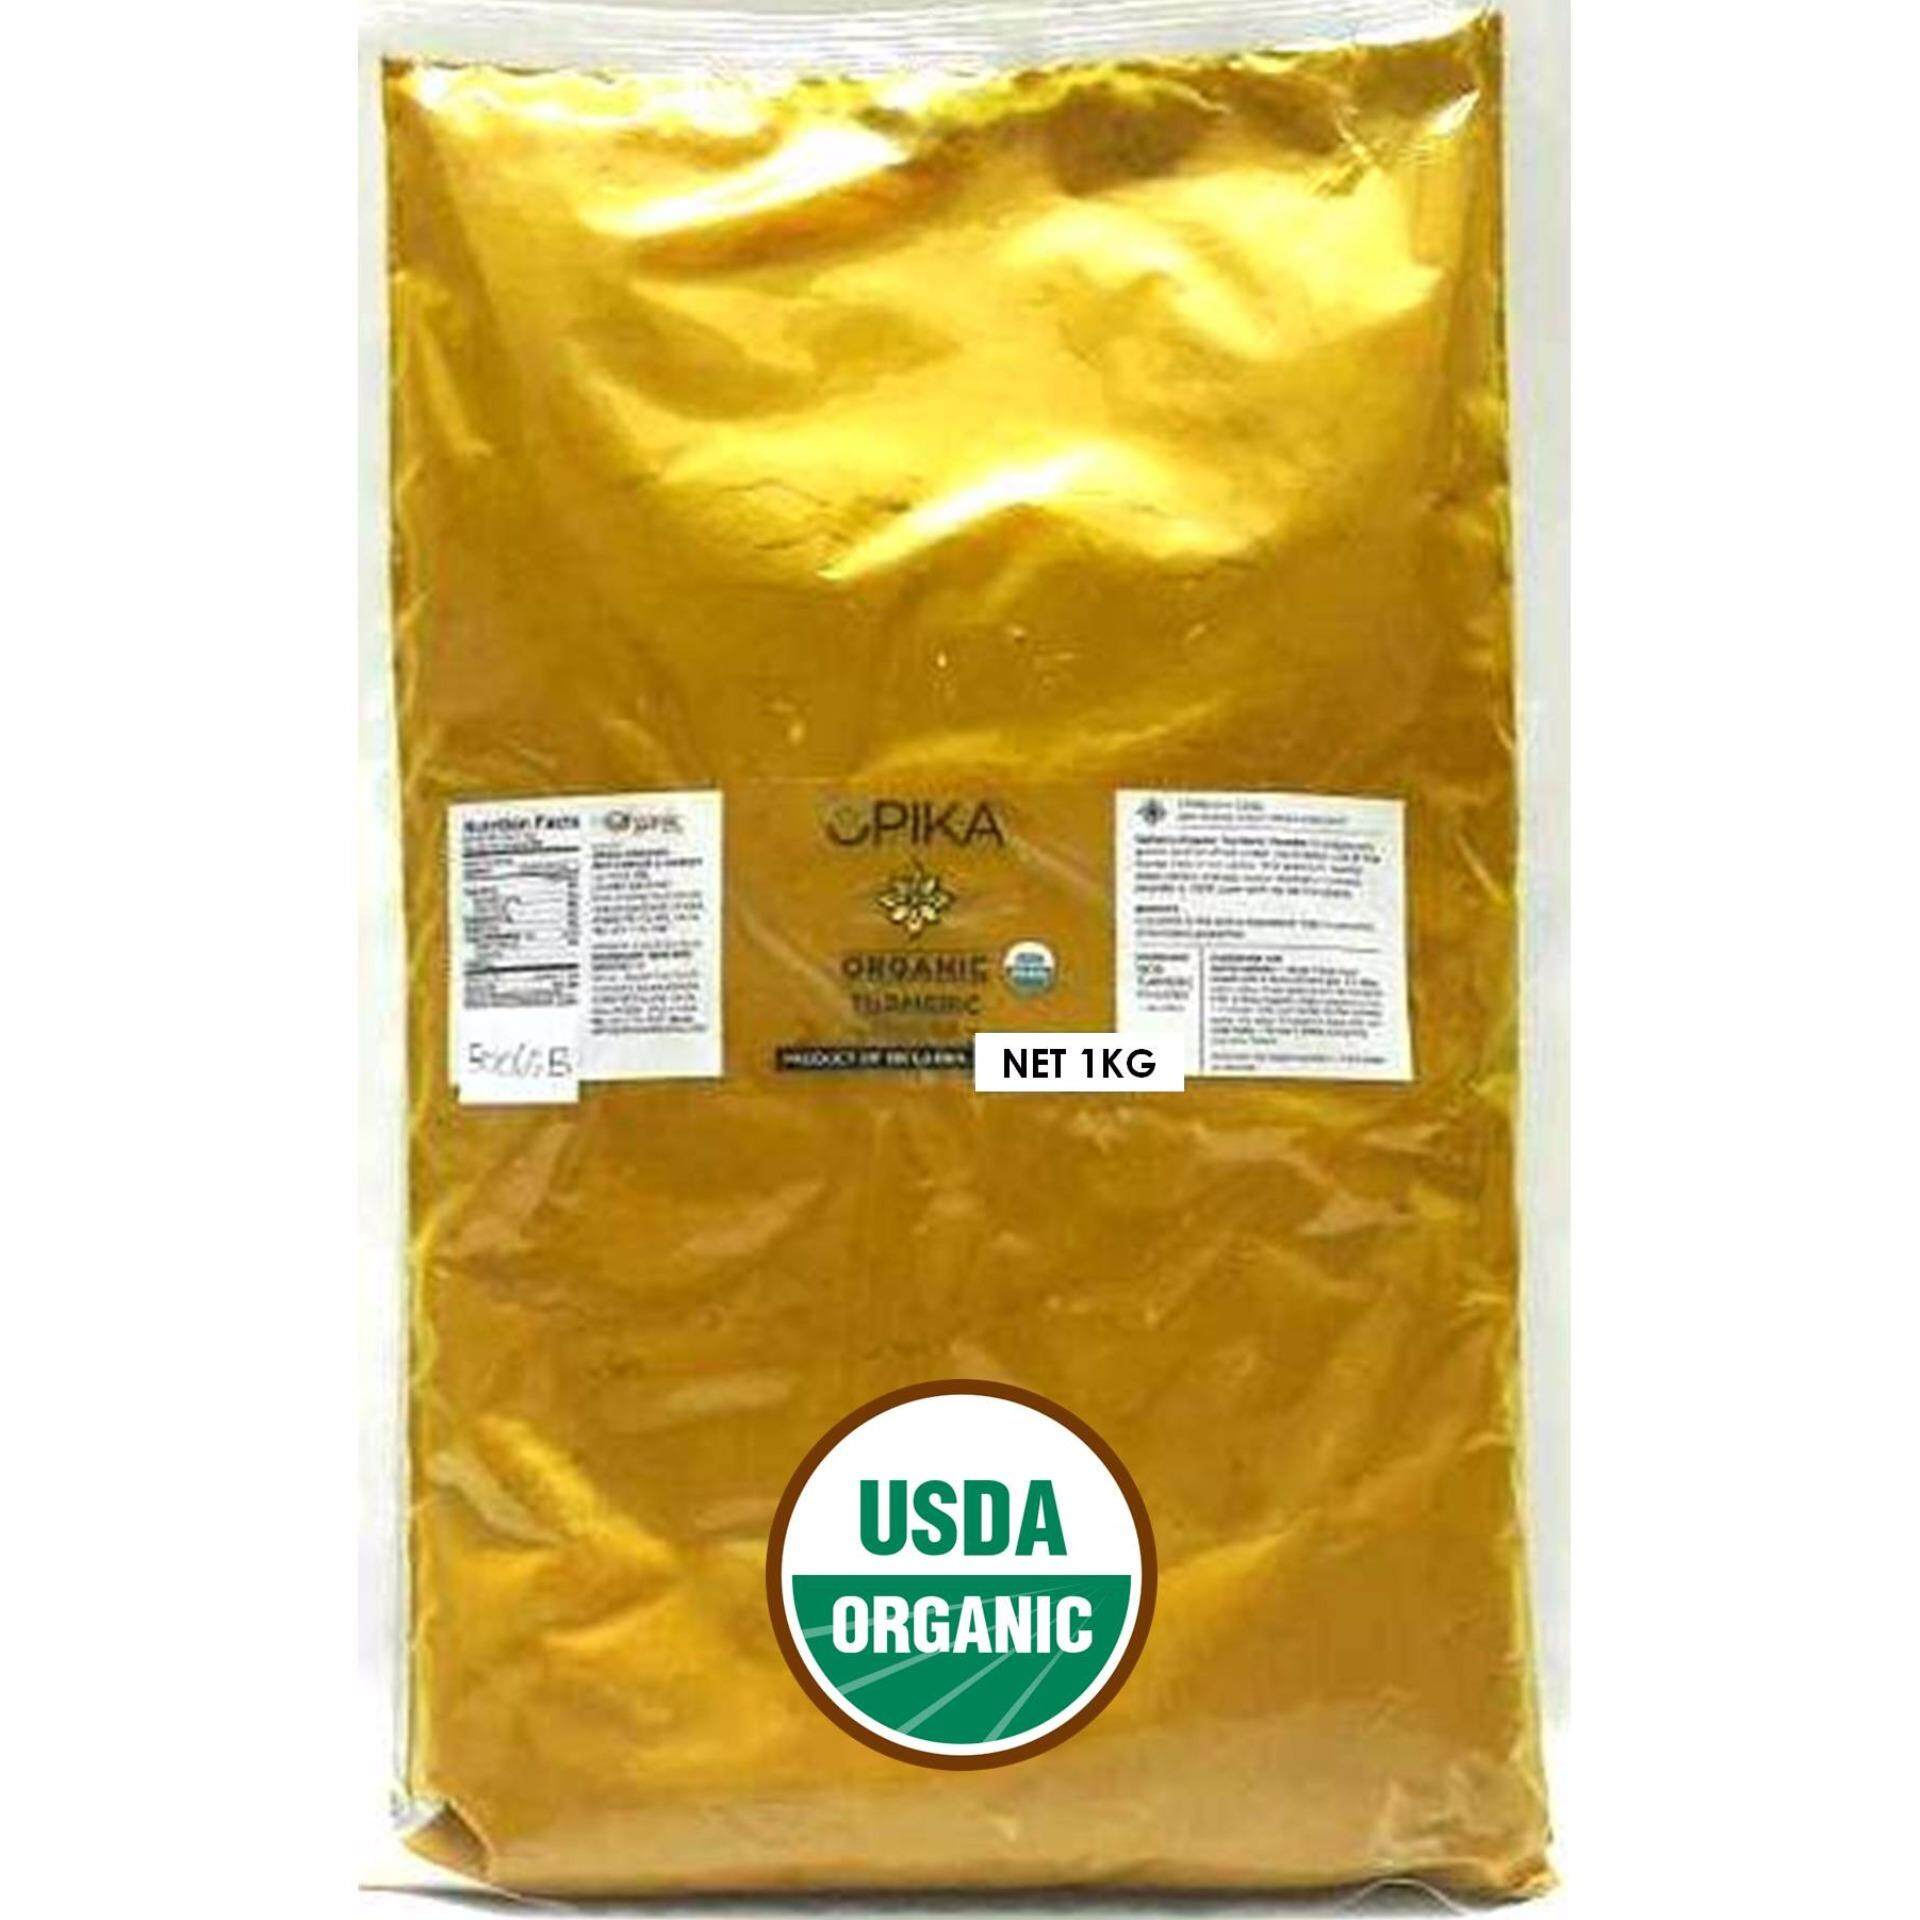 Opika Organic Turmeric Powder 1kg Super Value Pack Cycles